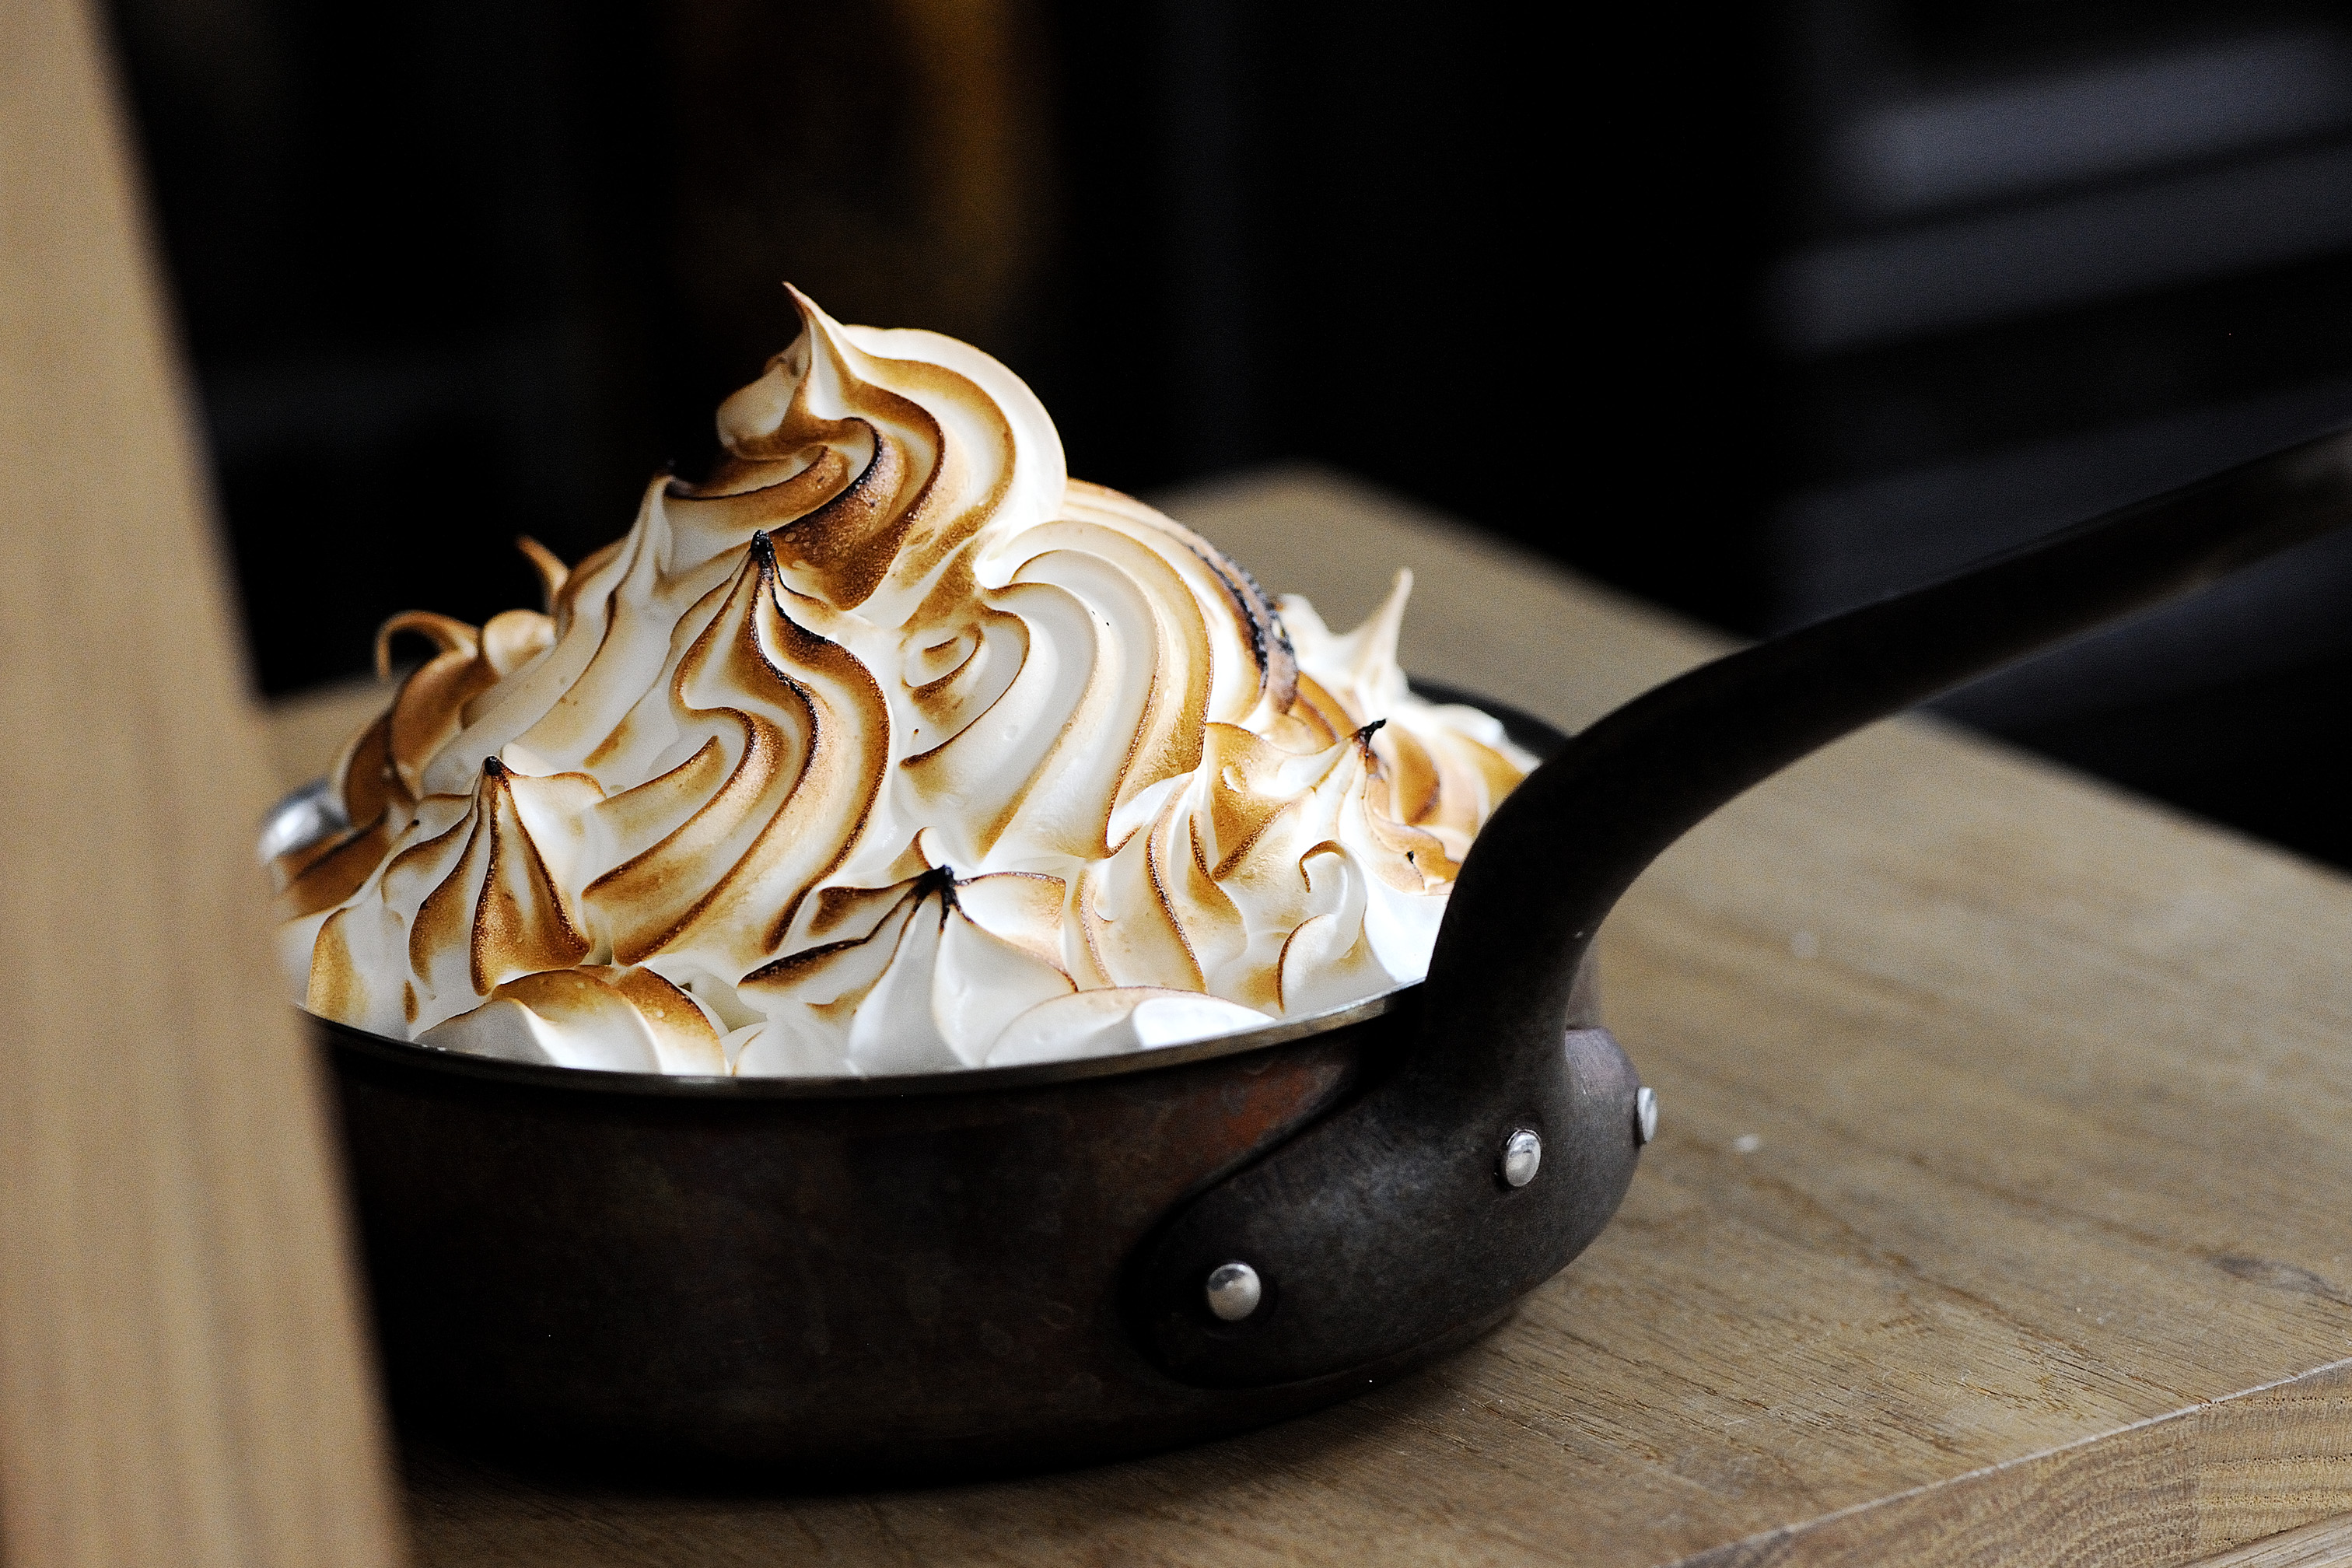 Menu Design by Ron Wan. Tom's Famous Baked Alaska Promotion at The Pawn's 2/F Tom Aikens Kitchen in Wan Chai, Hong Kong